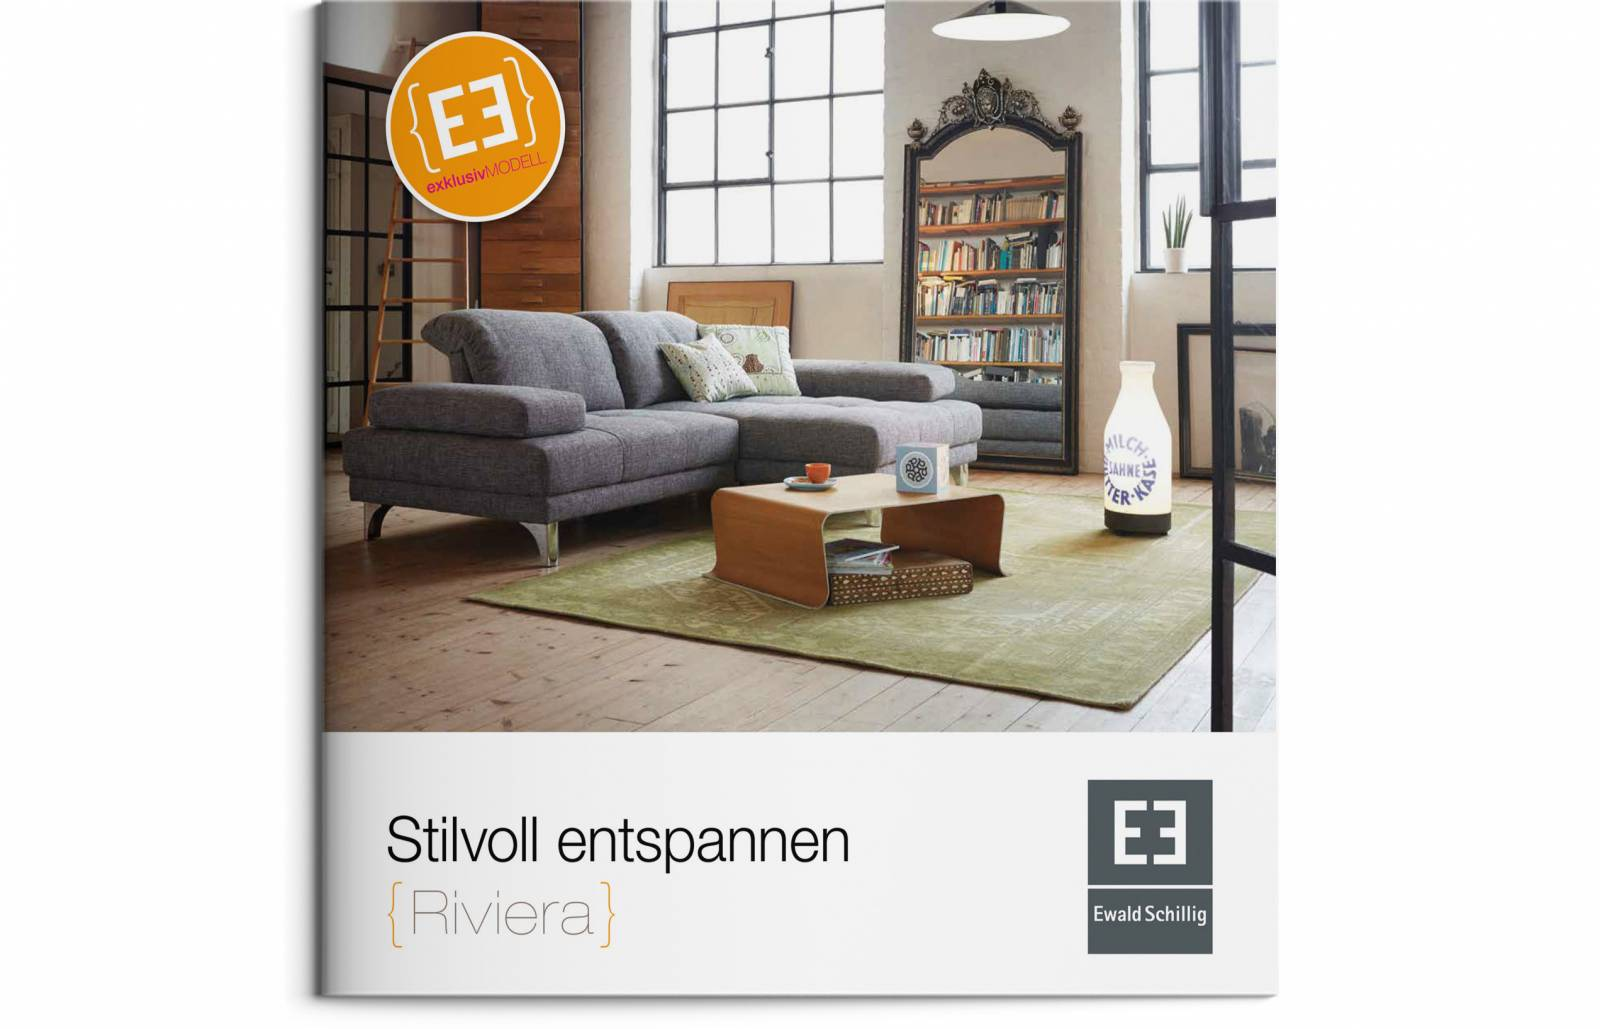 ETPTT, Ewald Schillig, Layout, Bildbearbeitung, Clipping, Farbmanagement, Reinzeichnung, 3D-Rendering, Animation